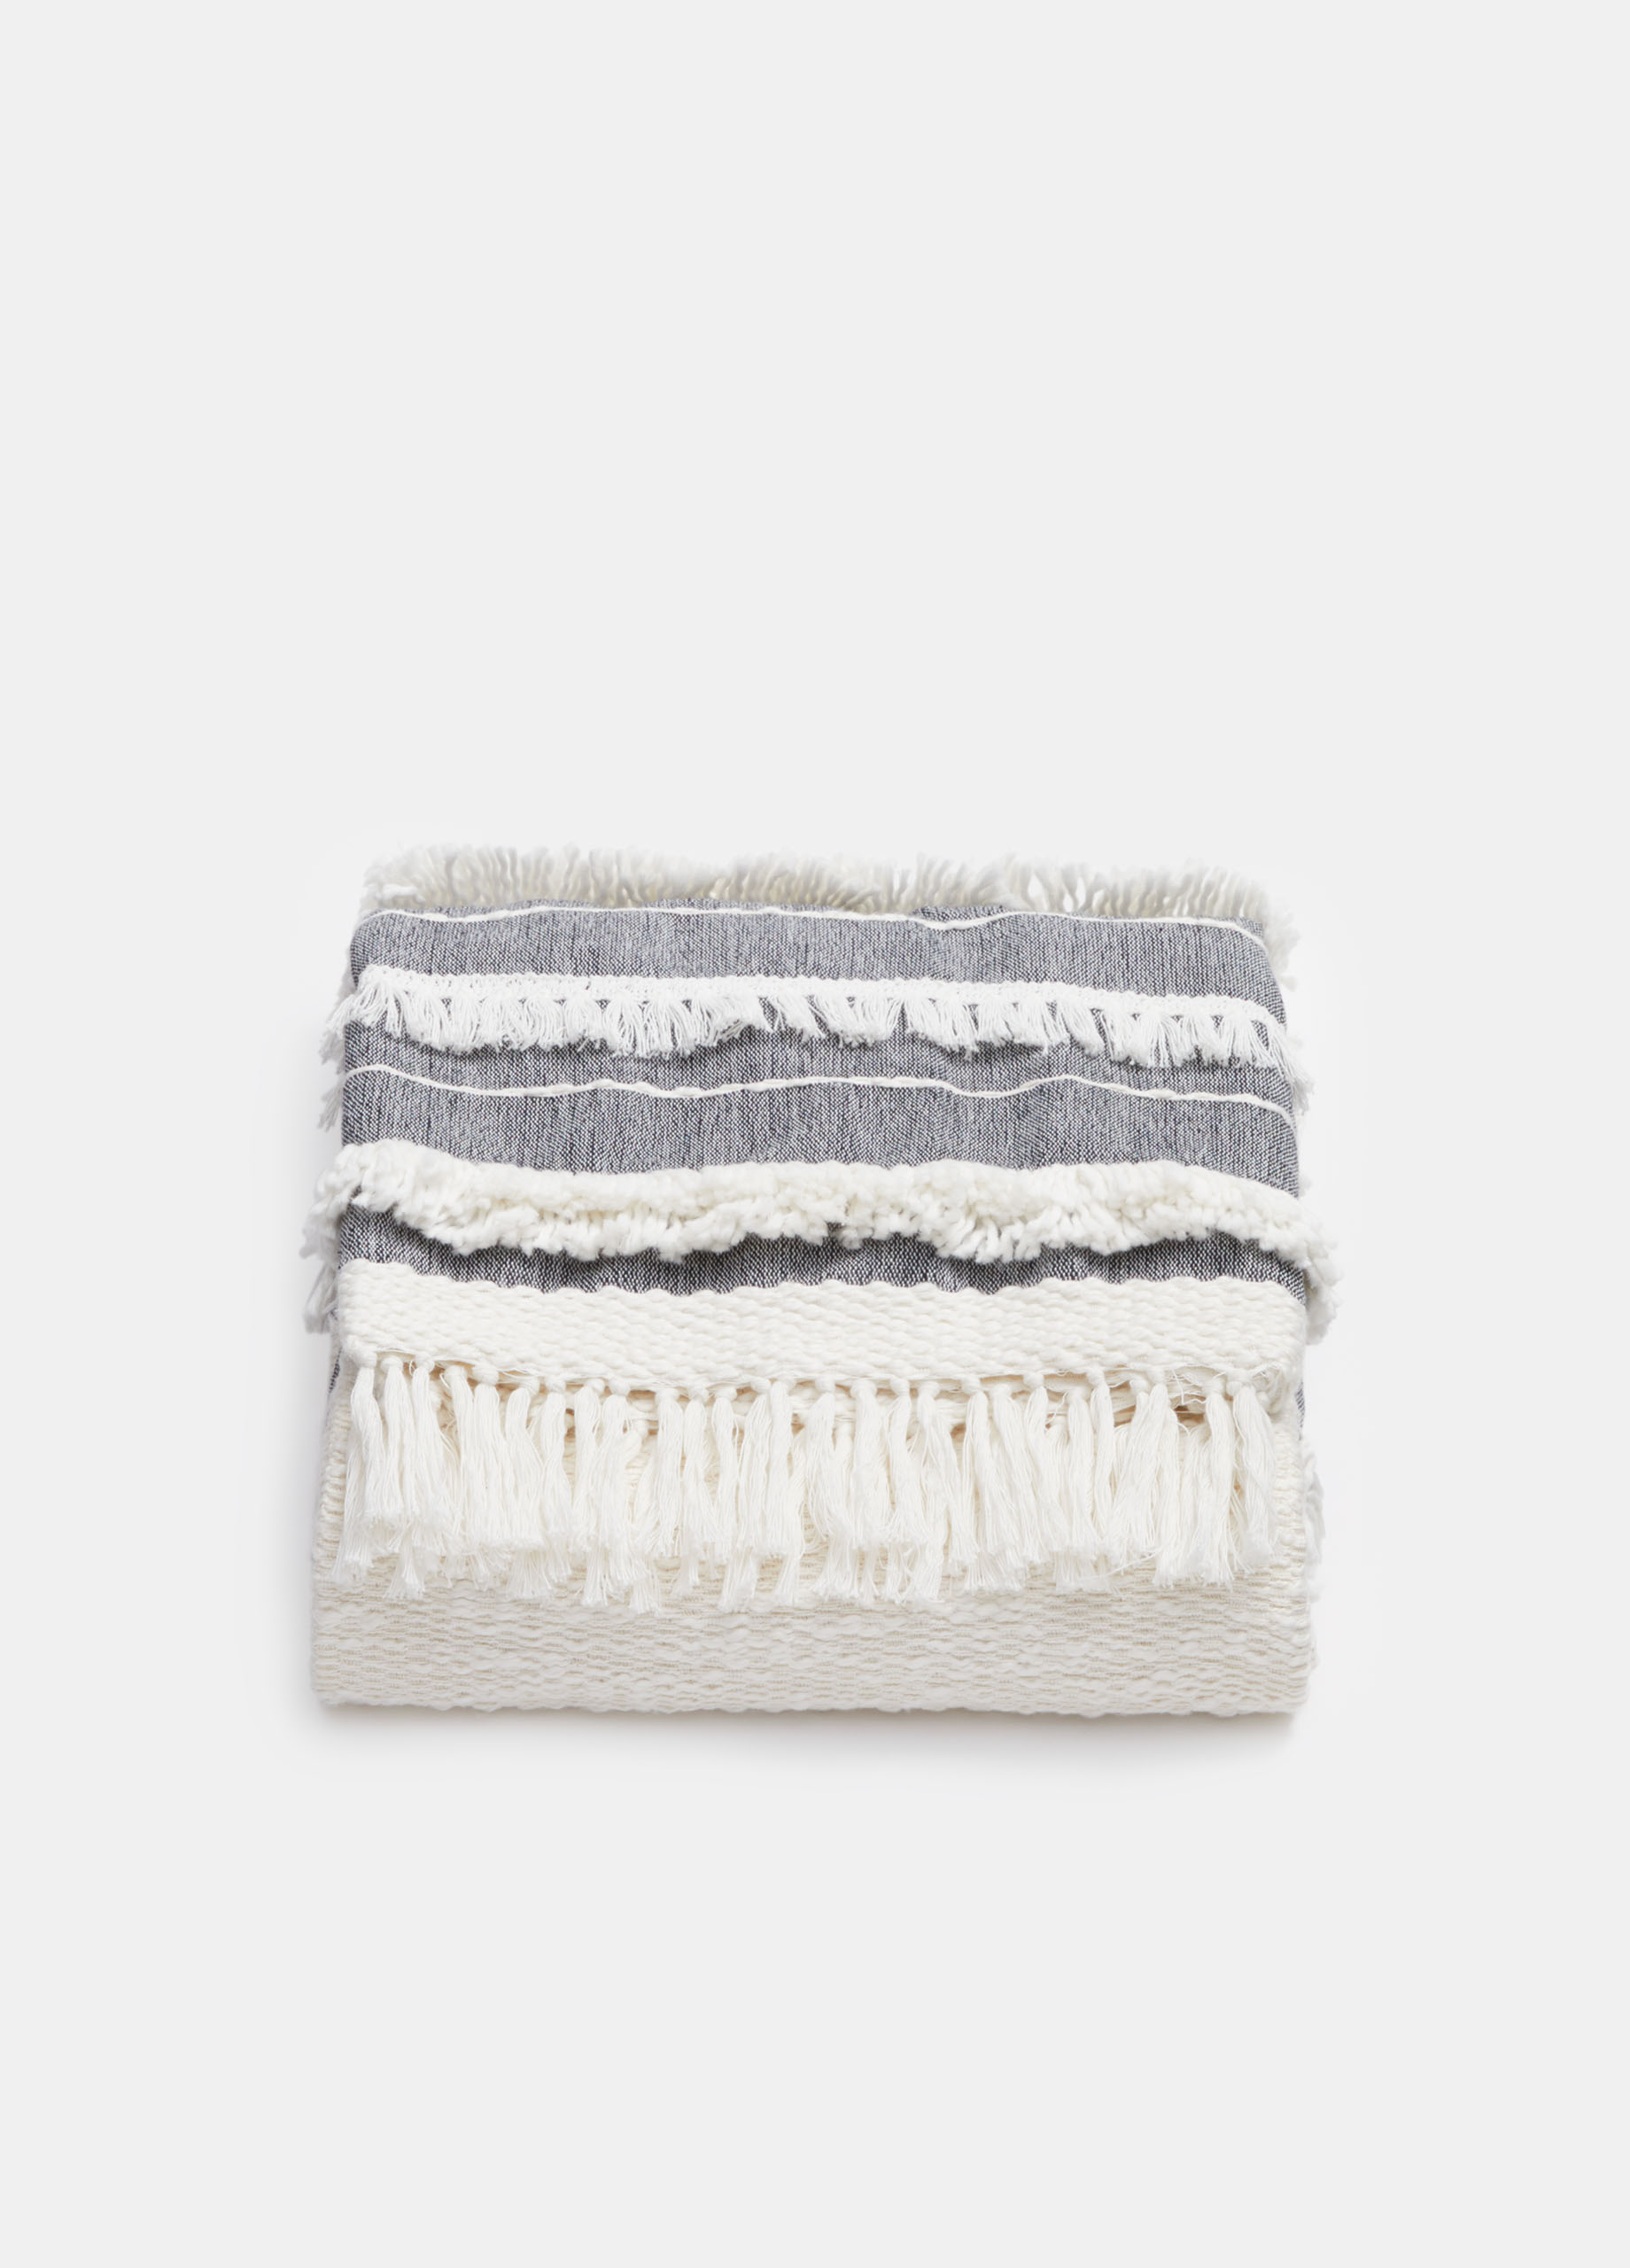 BLOOM & GIVE / Serenity Throw